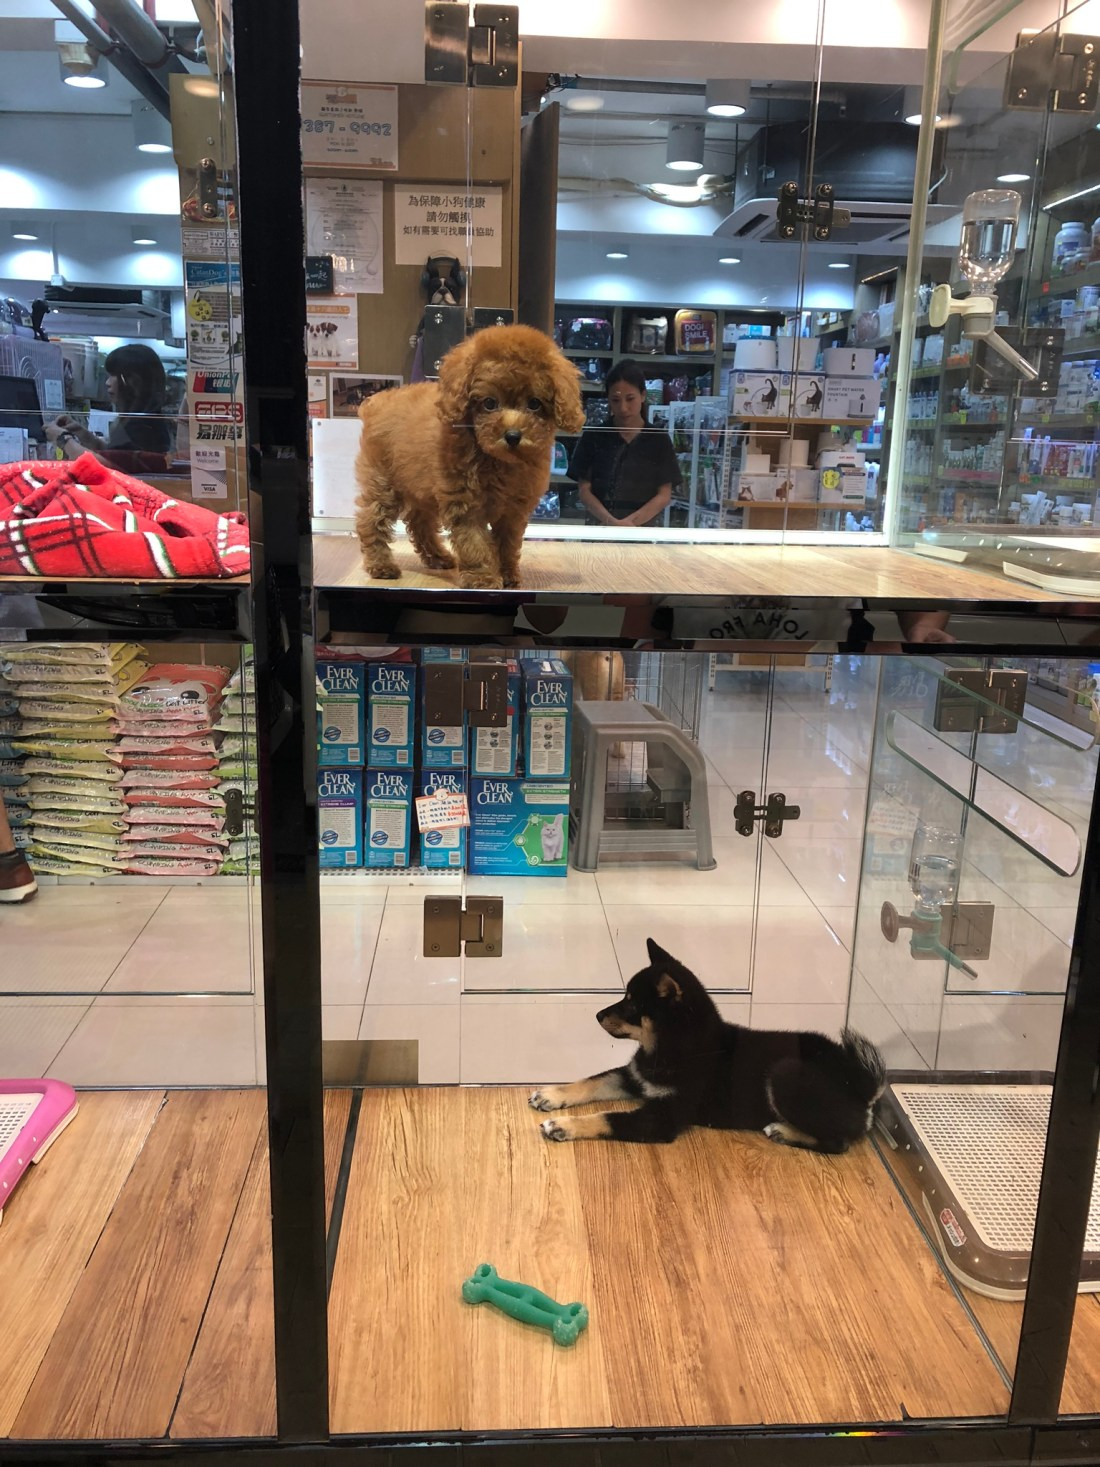 Puppies in a shop window in Hong Kong